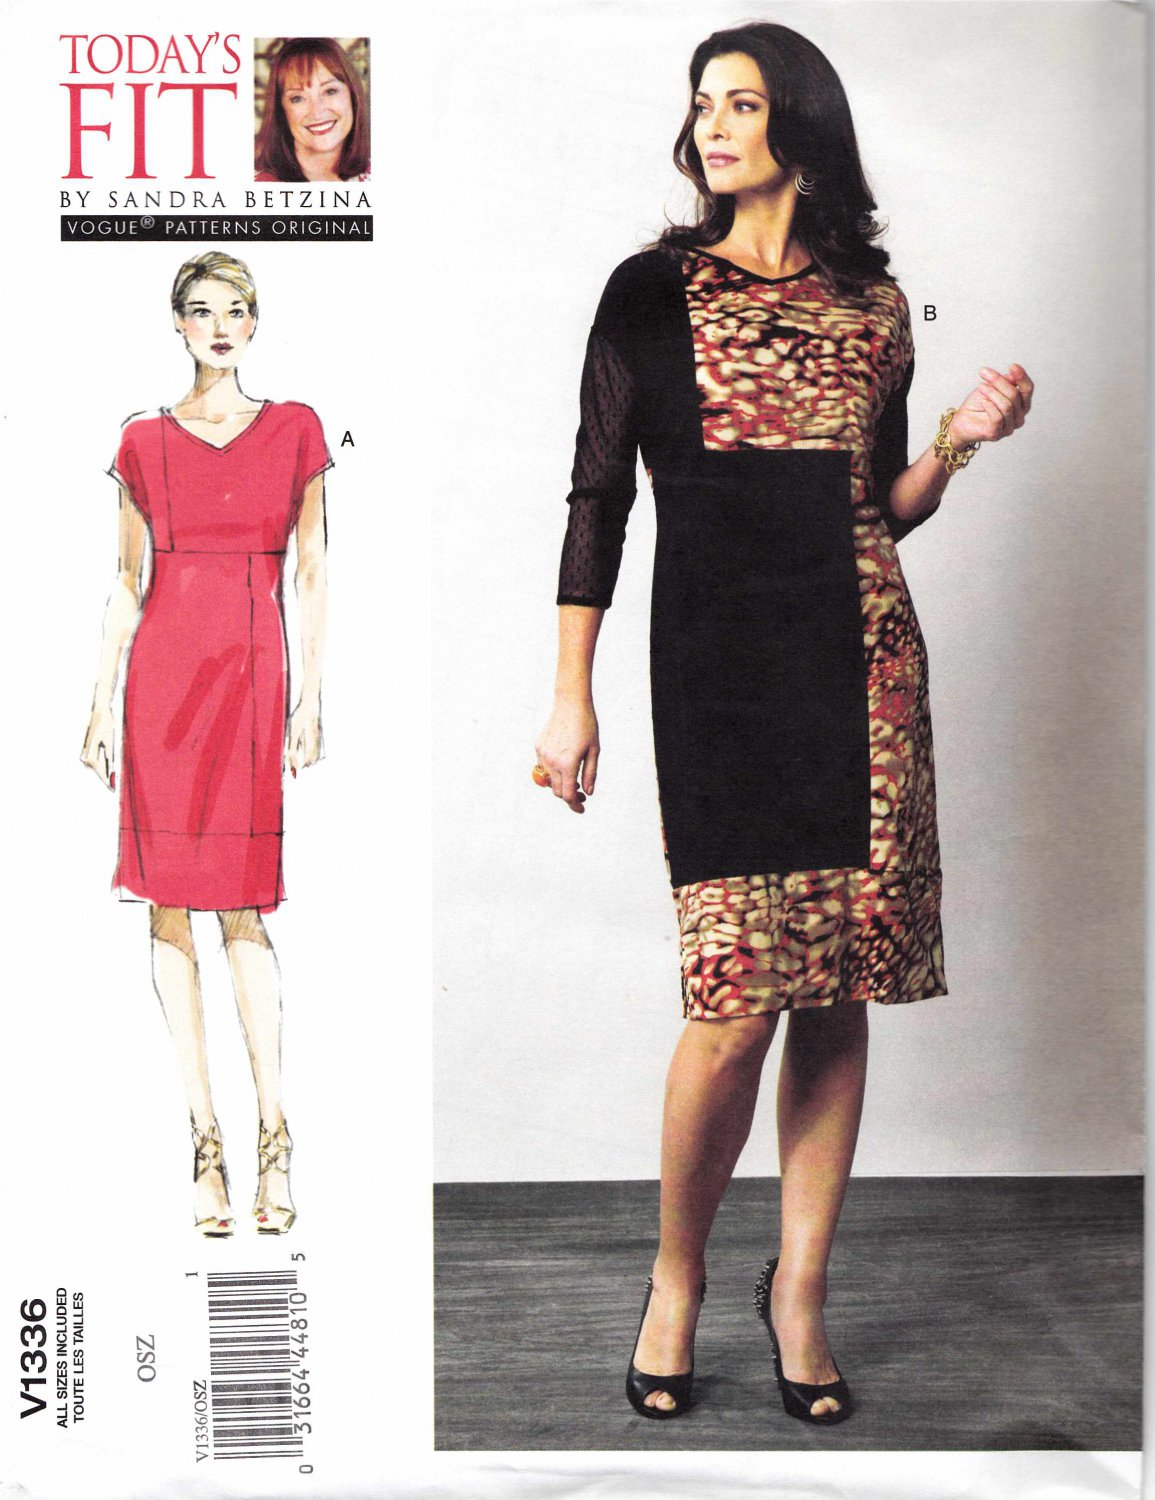 Vogue Sewing Pattern 1336 V1336 Misses'/Women's Plus Size 10-32W Betzina Easy Color Blocked Dress